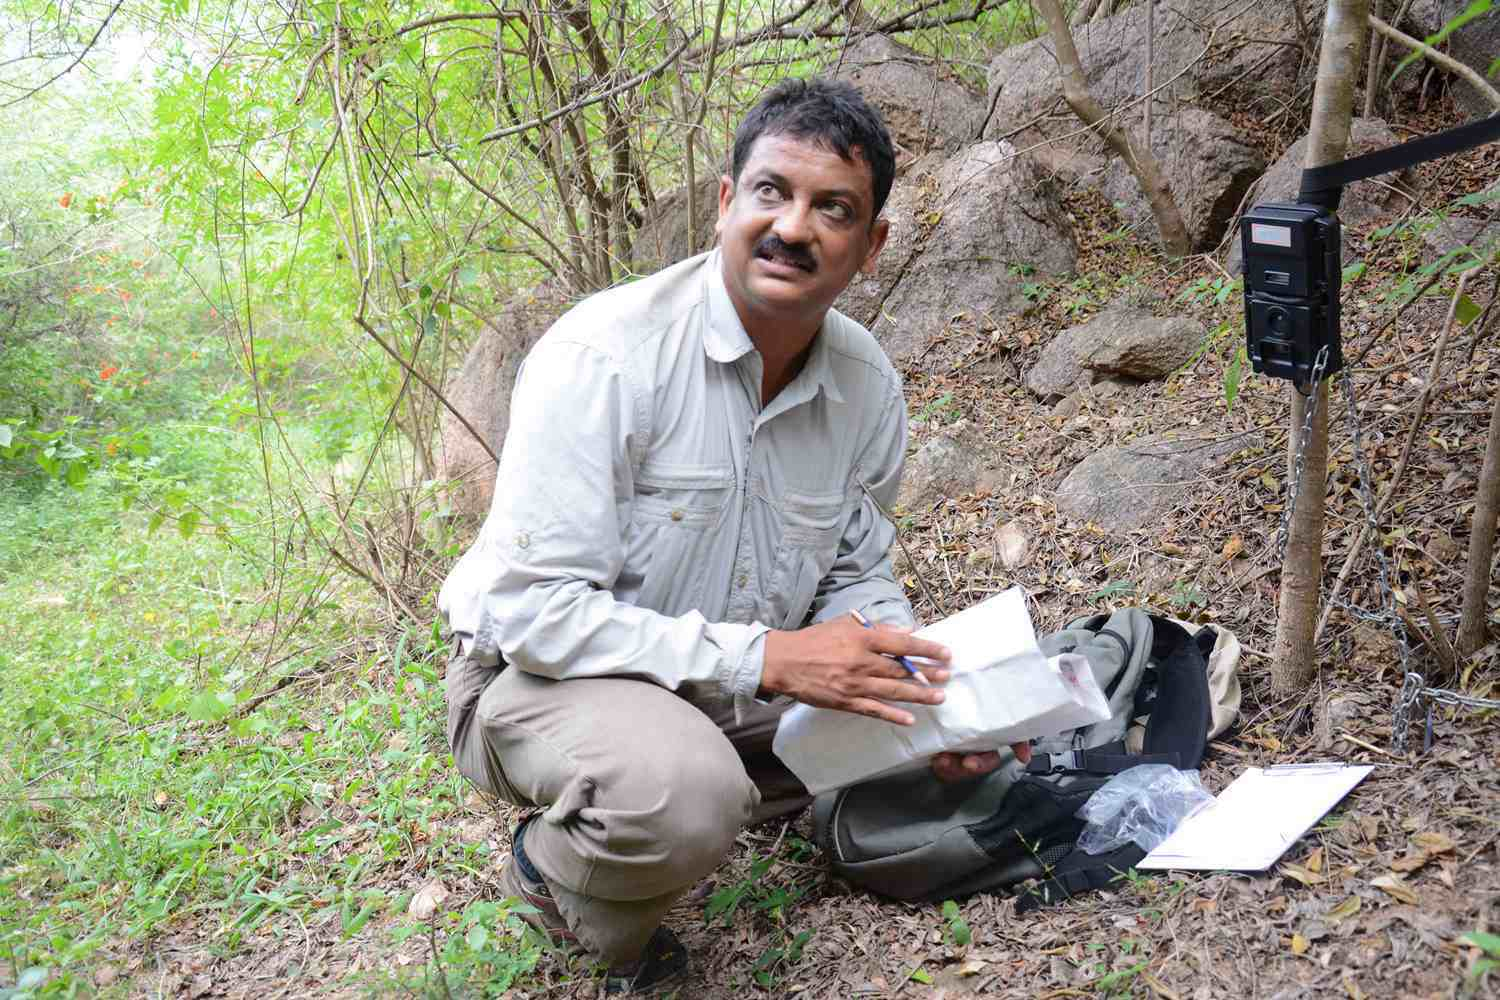 Lead scientist Sanjay Gubbi setting up a camera during the field study.